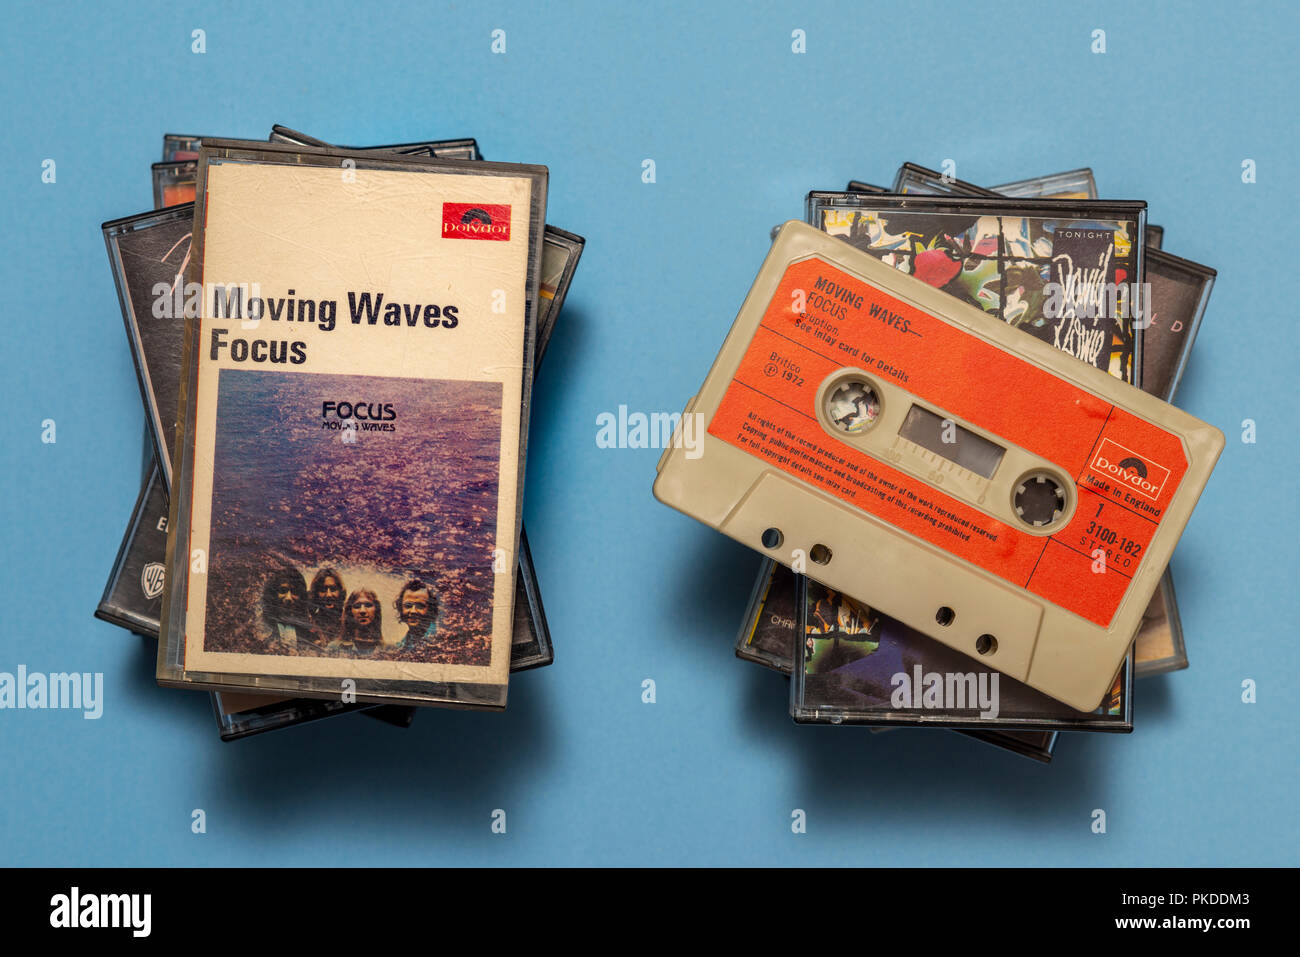 compact audio cassette of Focus, Moving Waves album with art work. - Stock Image